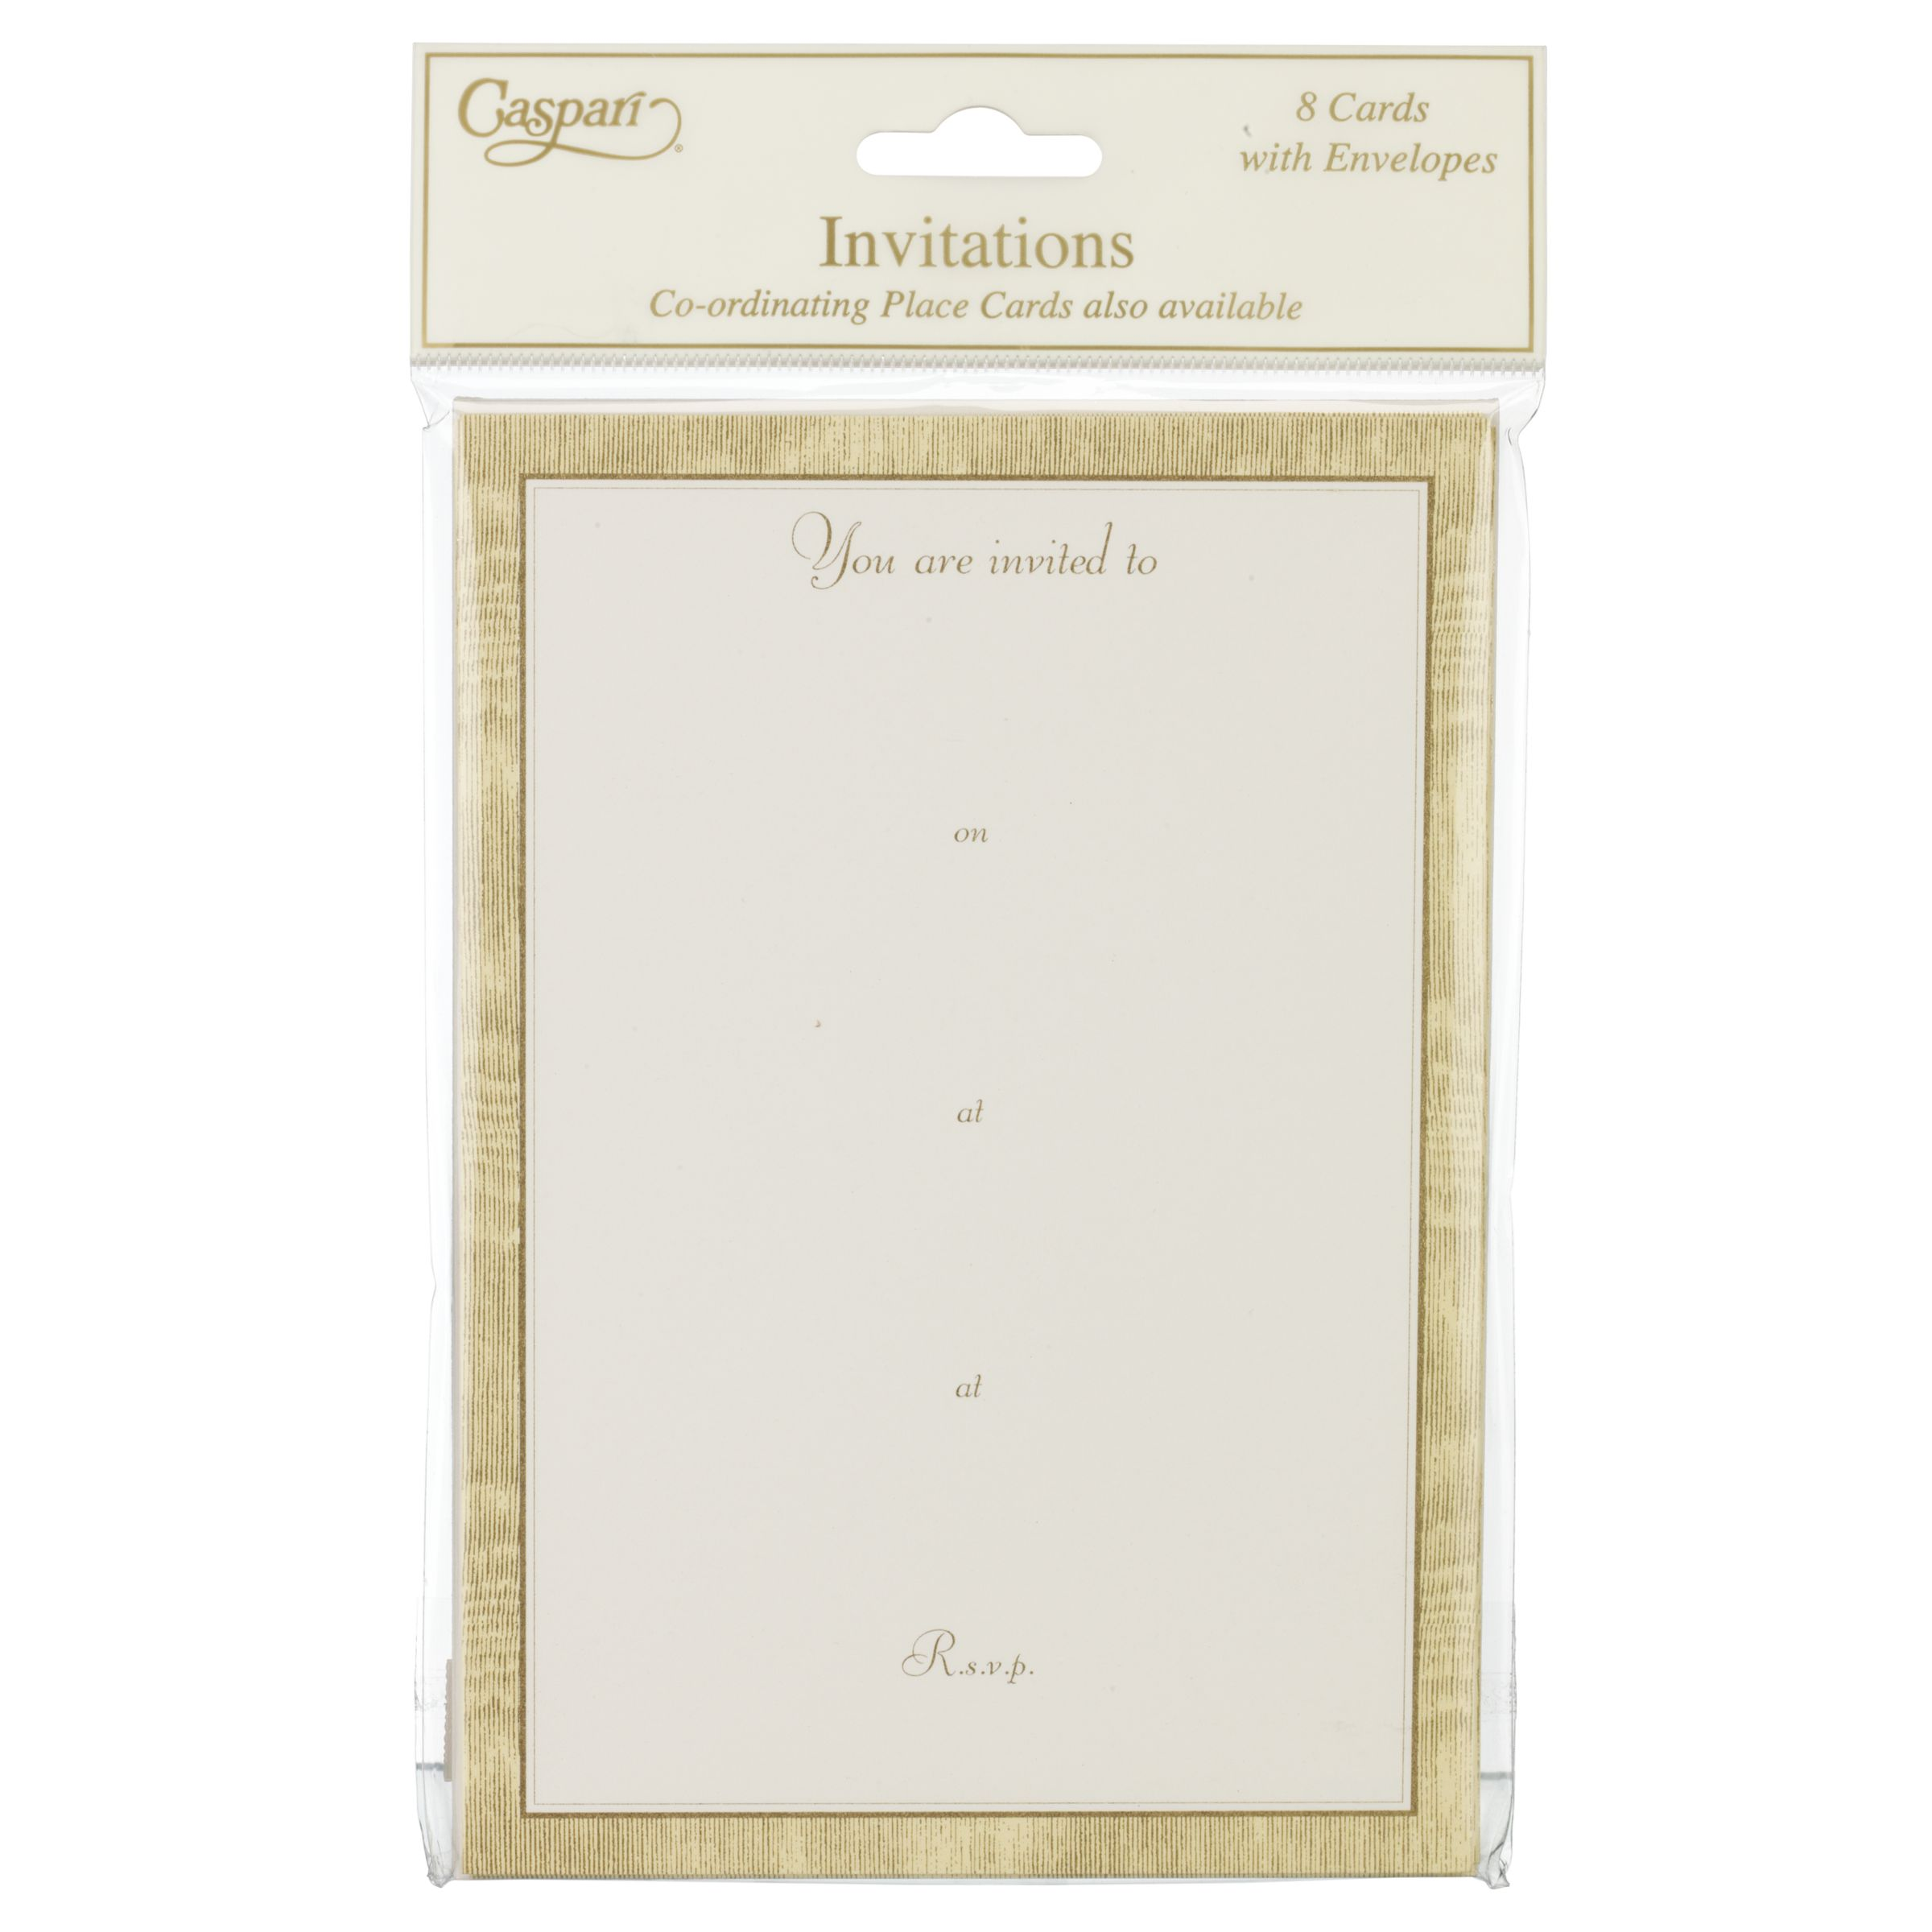 Caspari Gold Moiré Invitations, Set Of 8